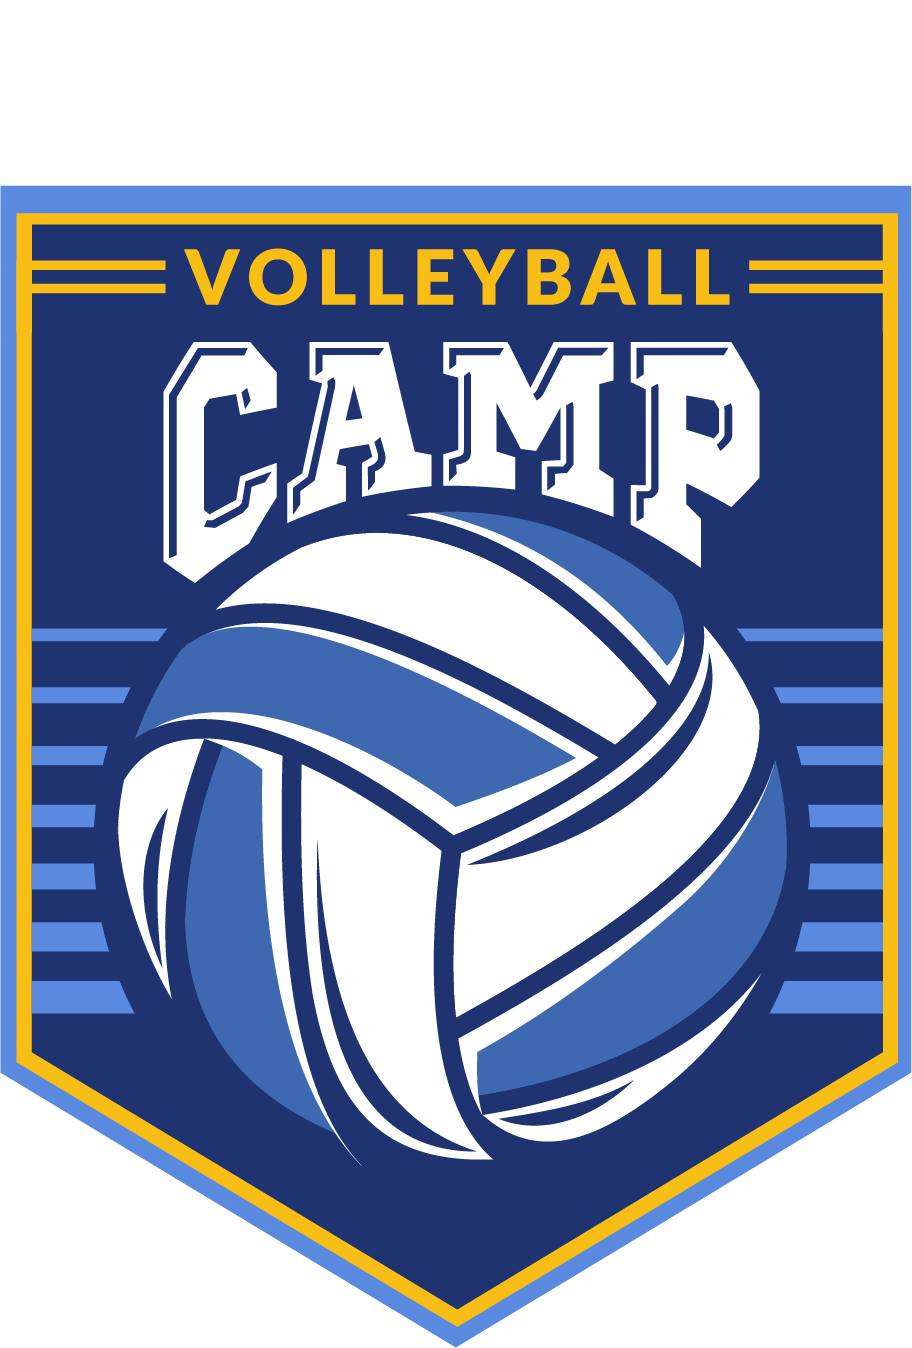 Caddo Parish District Attorney Volleyball Camp